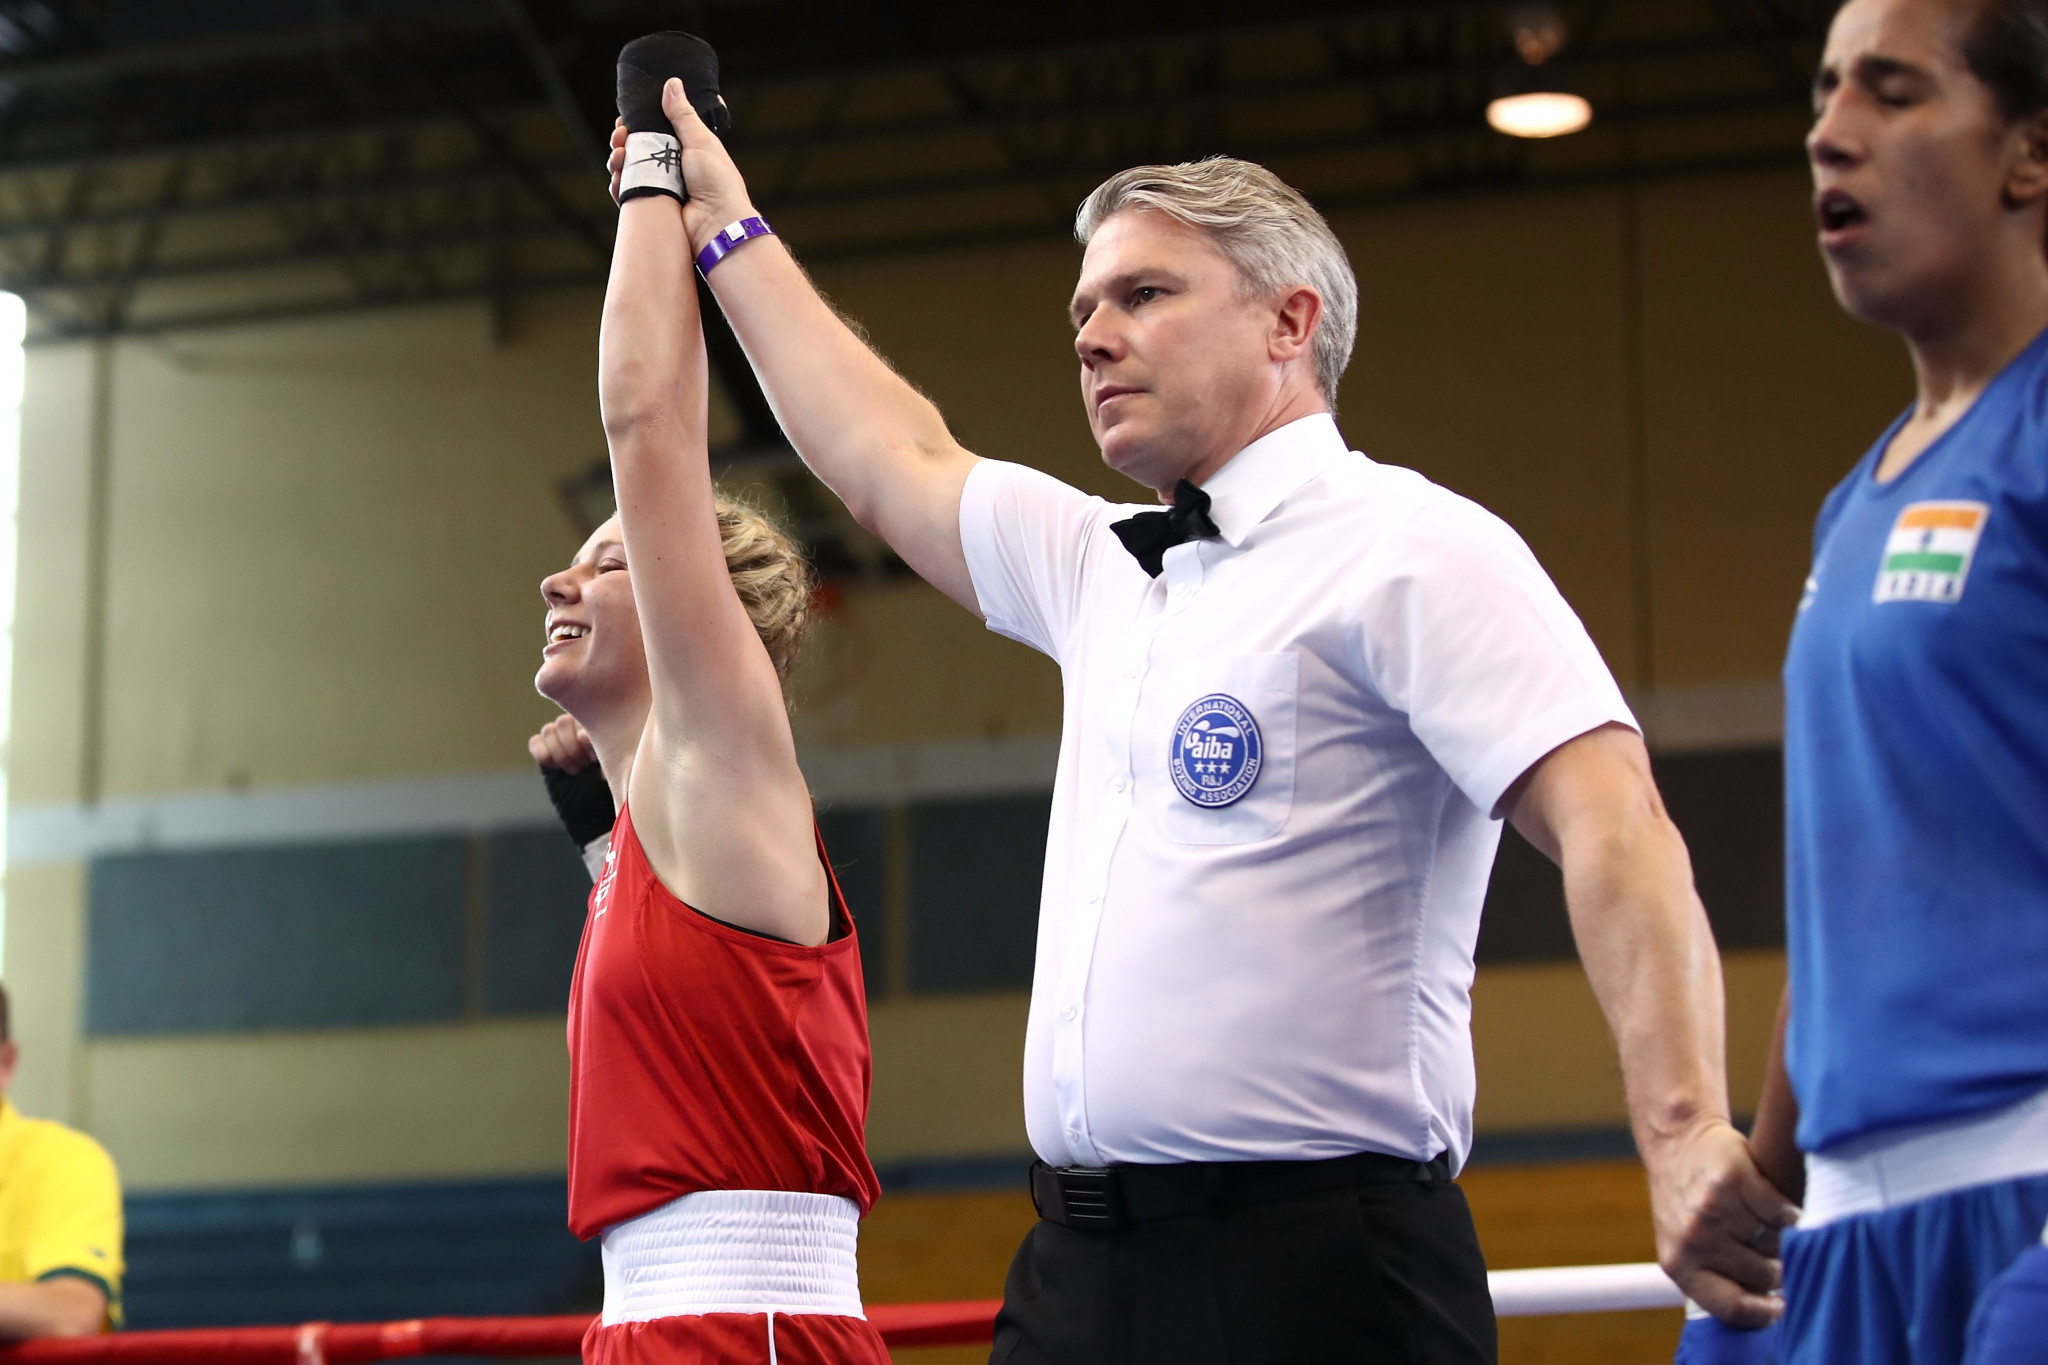 Australia's Boot among ones to watch at AIBA Women's Youth World Championships